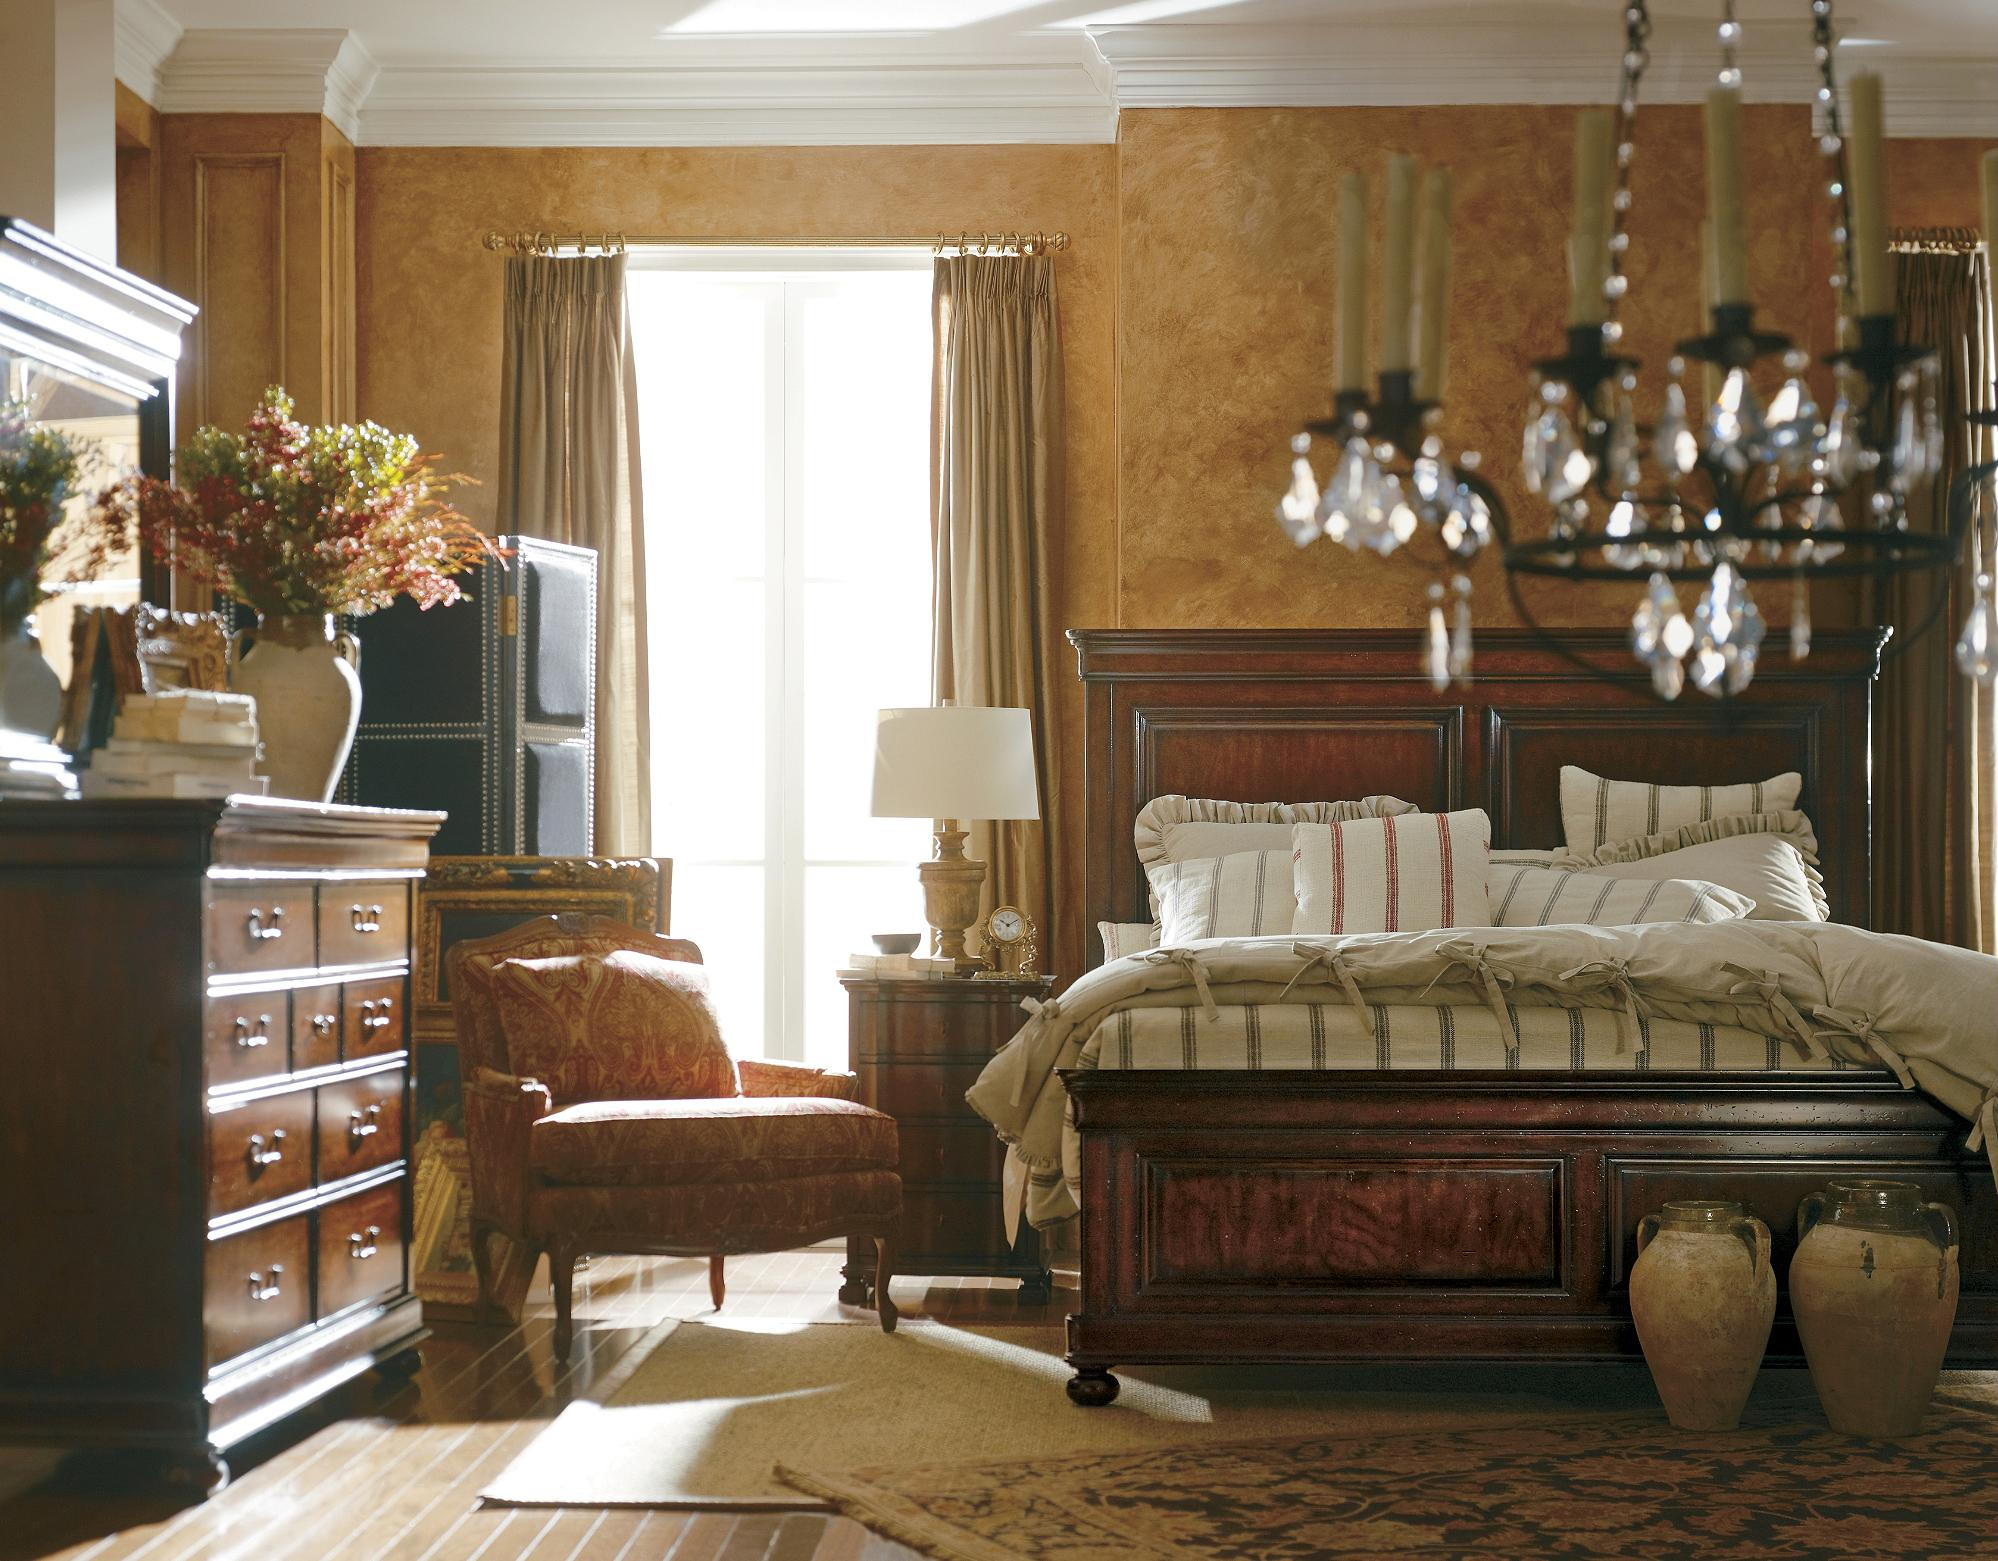 Stanley Furniture The Classic Portfolio - Louis Philippe Queen Bedroom Group - Item Number: 058-13 Q Bedroom Group 1